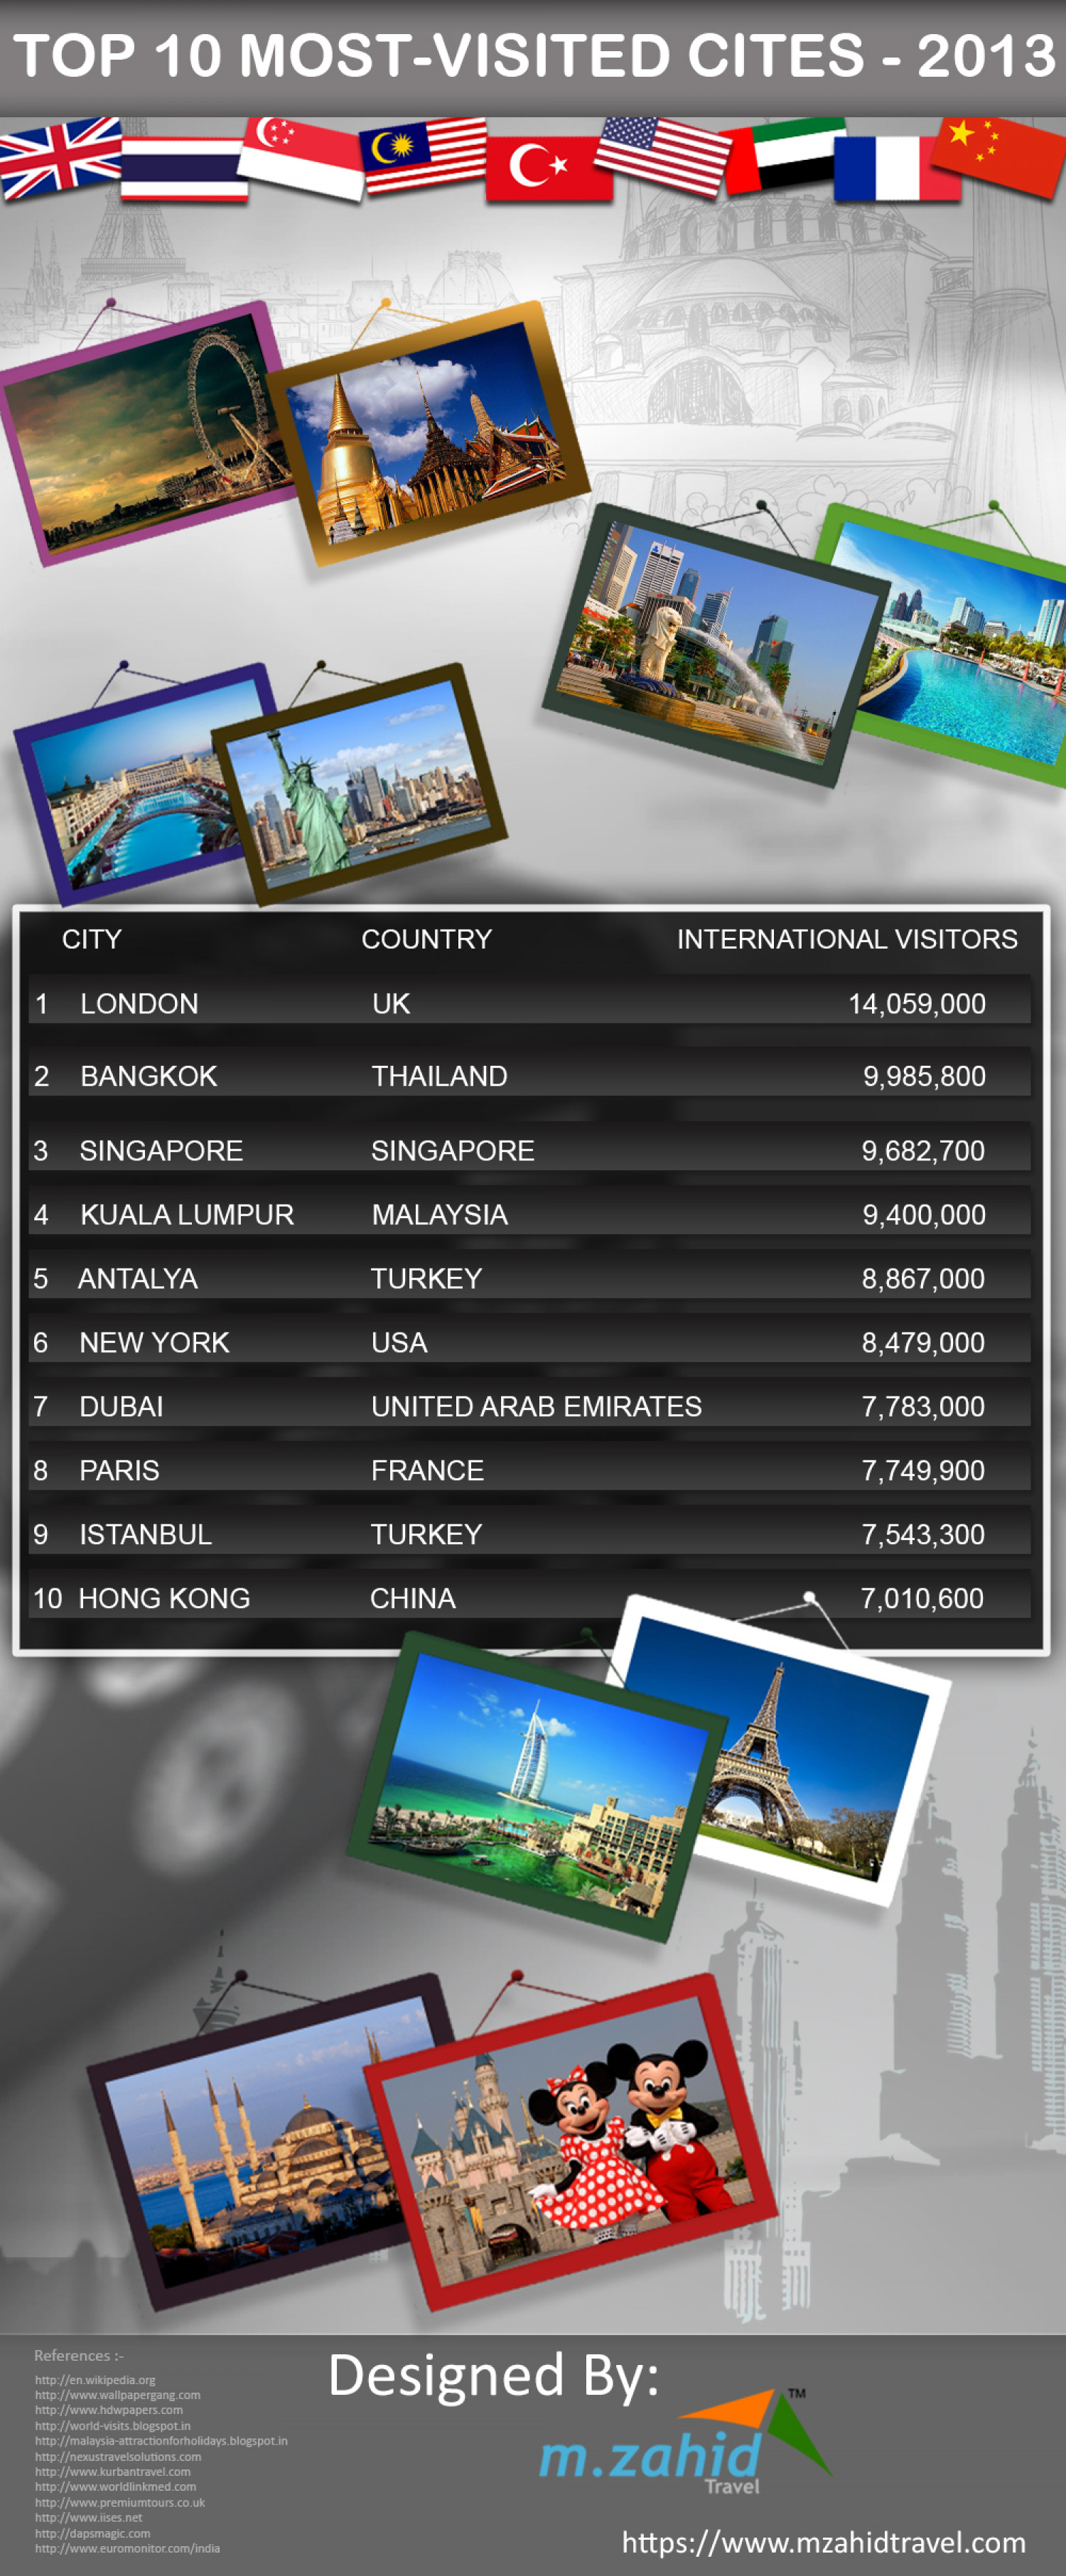 Top 10 most Visited Cities in 2013 Infographic